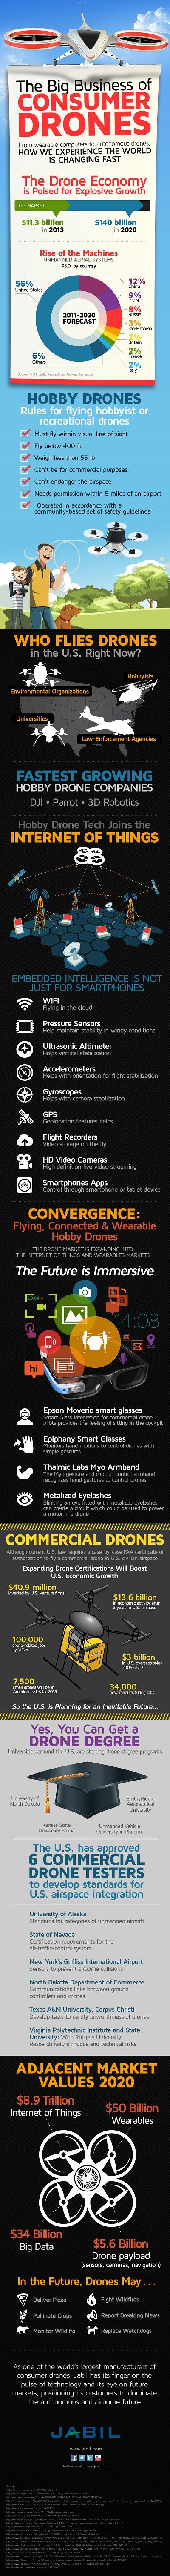 The Big Business of Consumer Drones - [infographic]